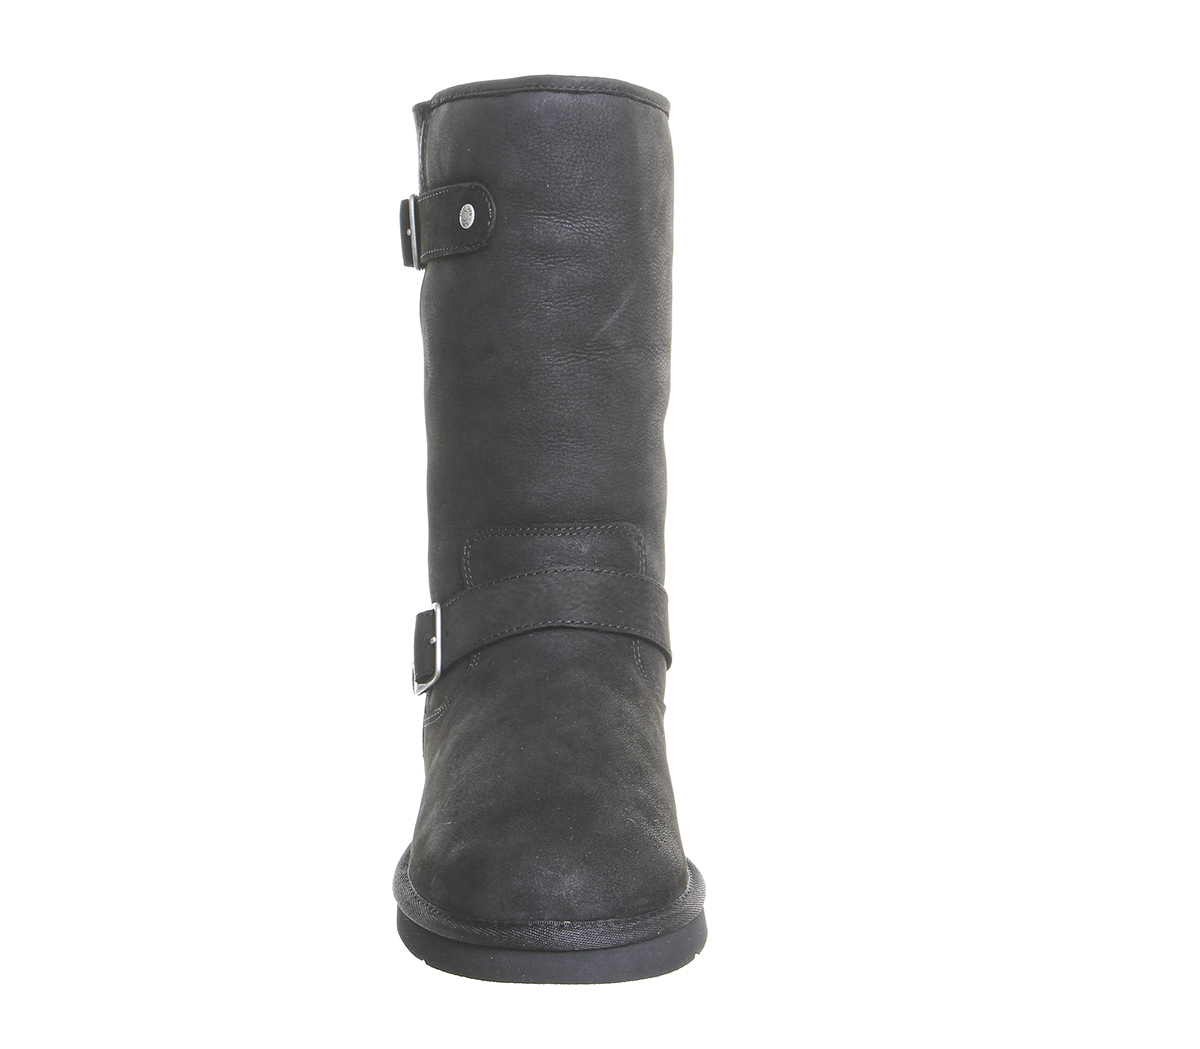 473873c6715 Ugg Sutter Leather Calf Boots Toast - cheap watches mgc-gas.com